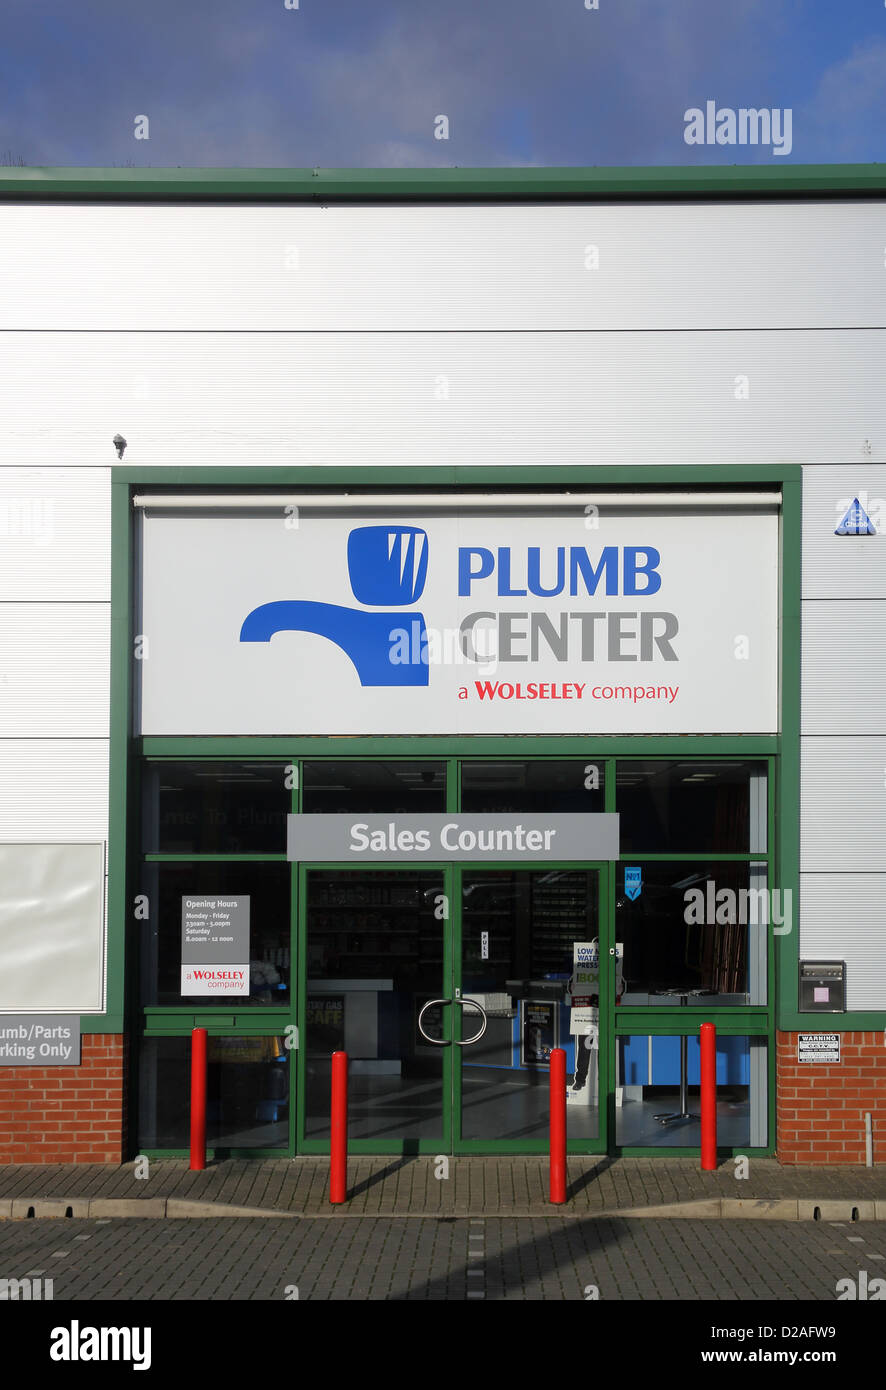 the plumb center plumbing supplies store in burgess hill west sussex Stock Photo